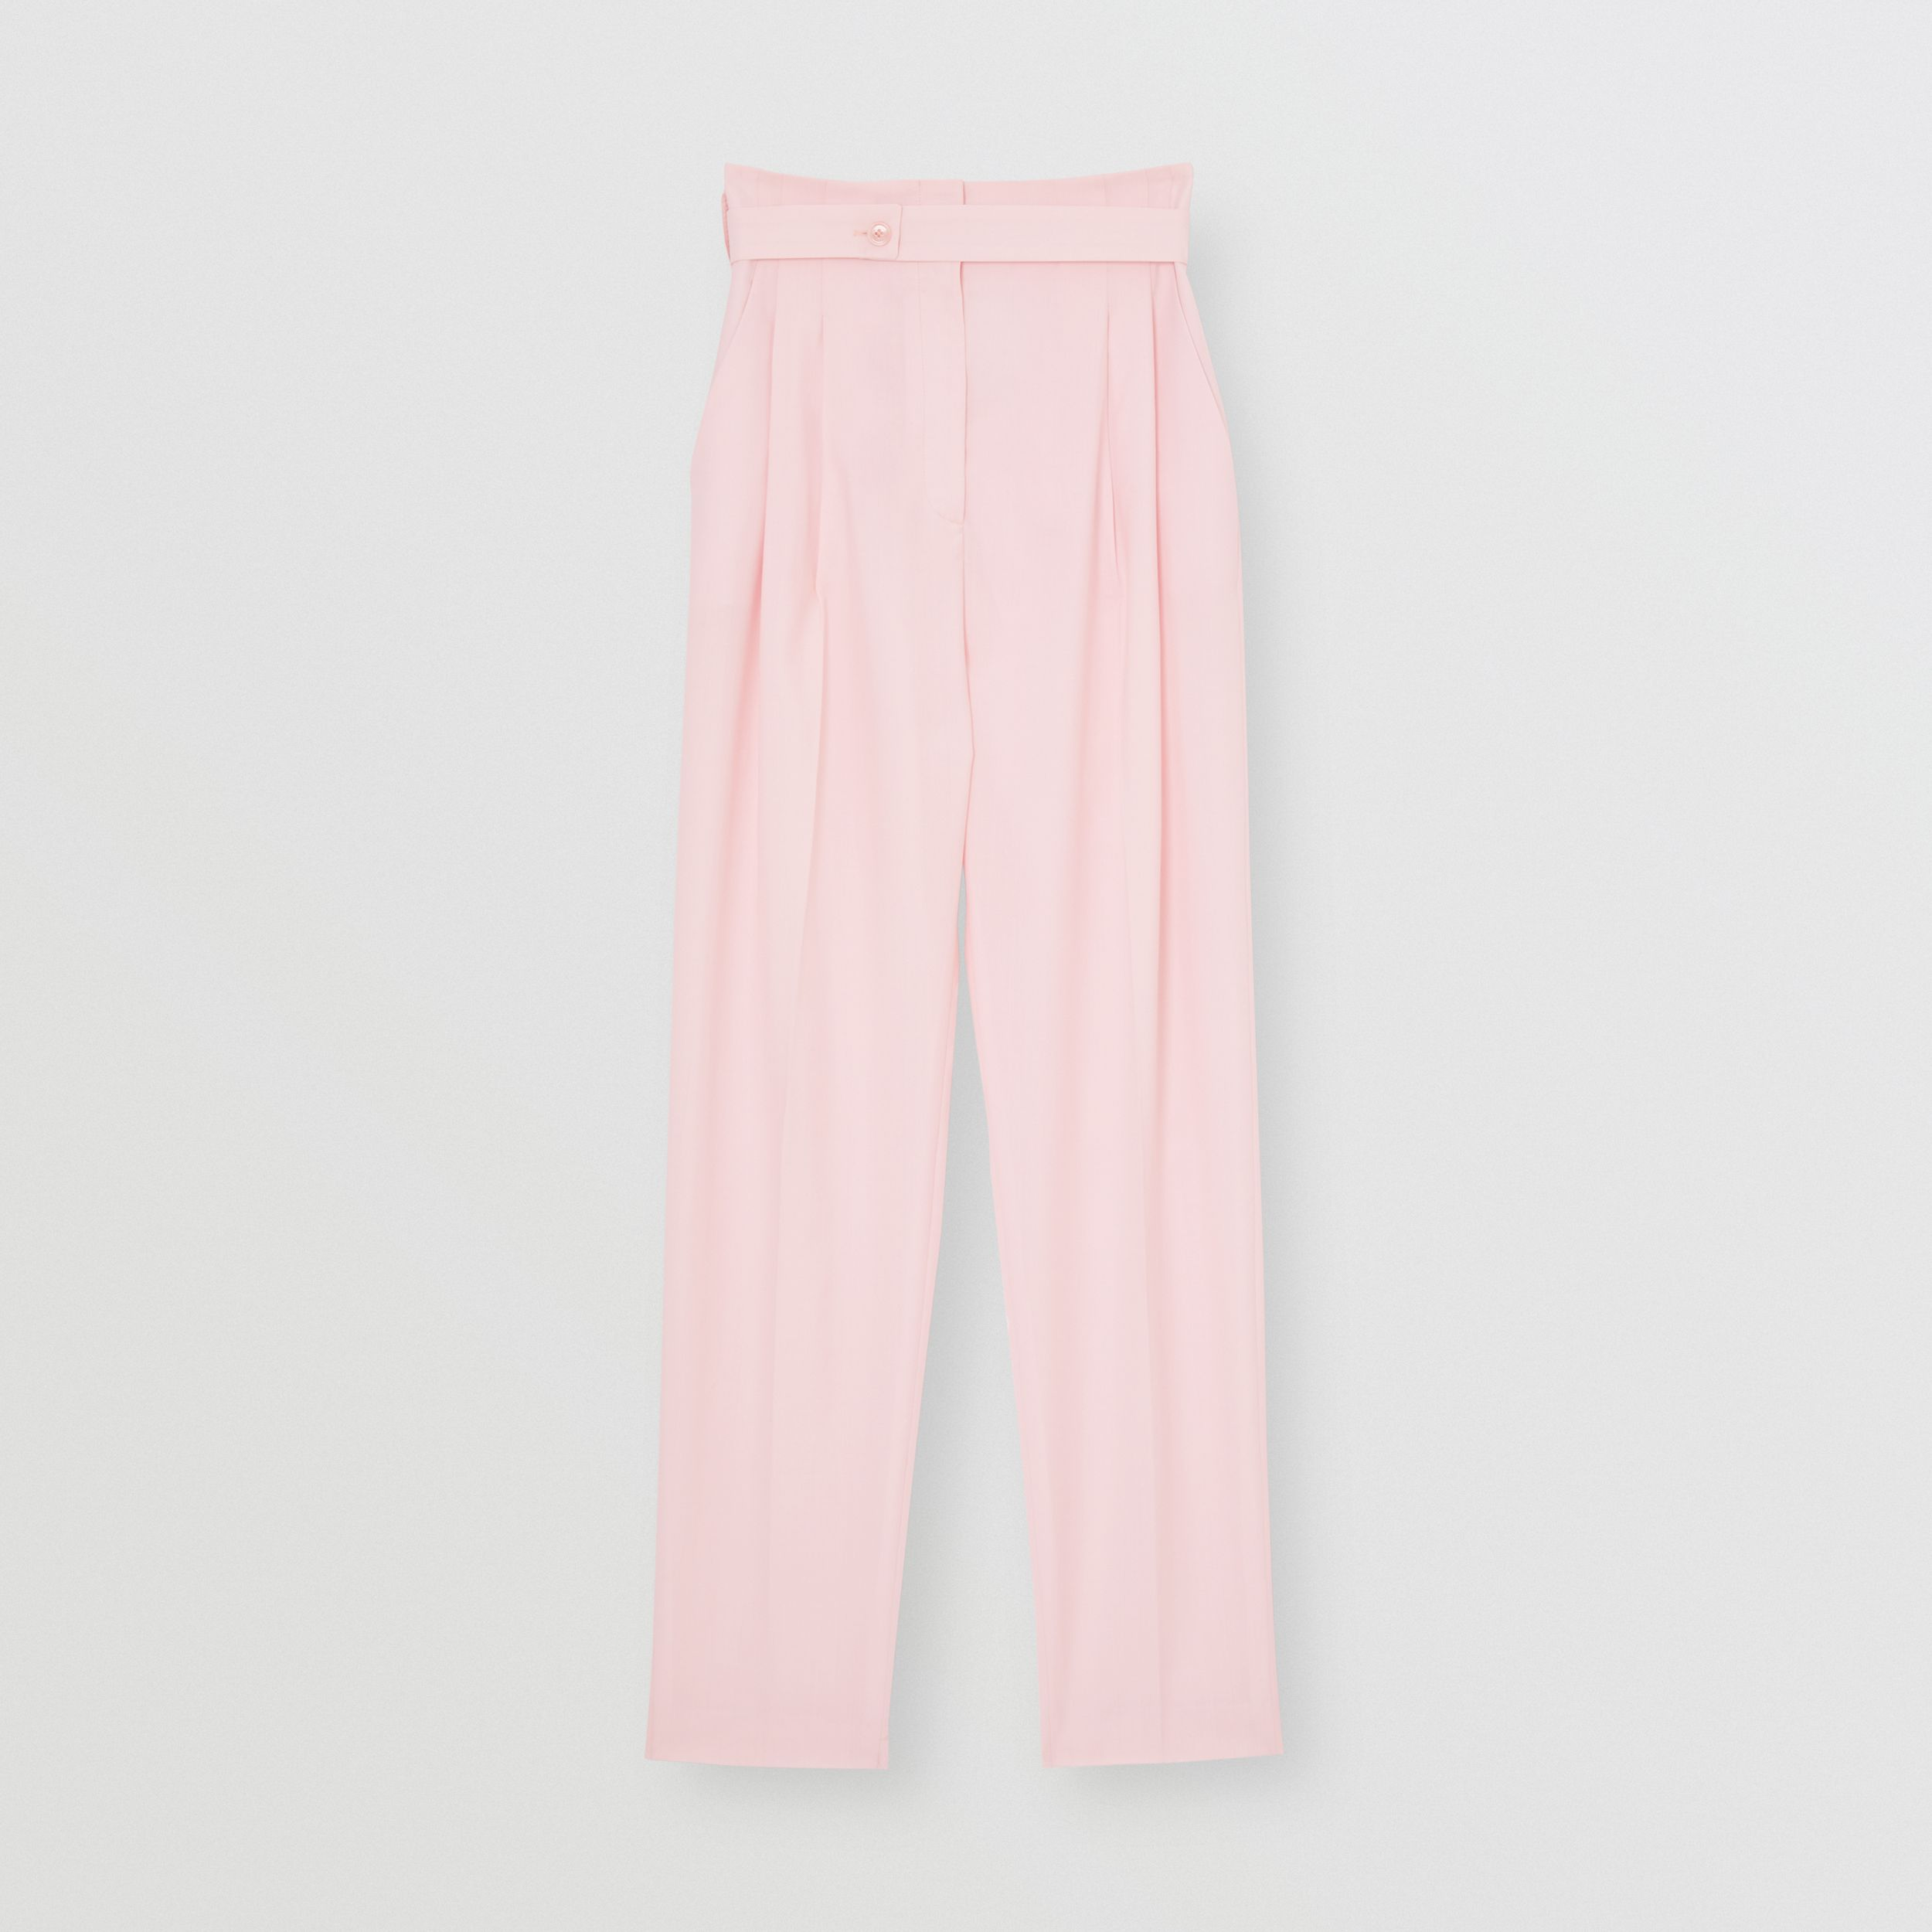 Cut-out Detail Wool Canvas Tailored Trousers in Pastel Pink - Women | Burberry Canada - 1